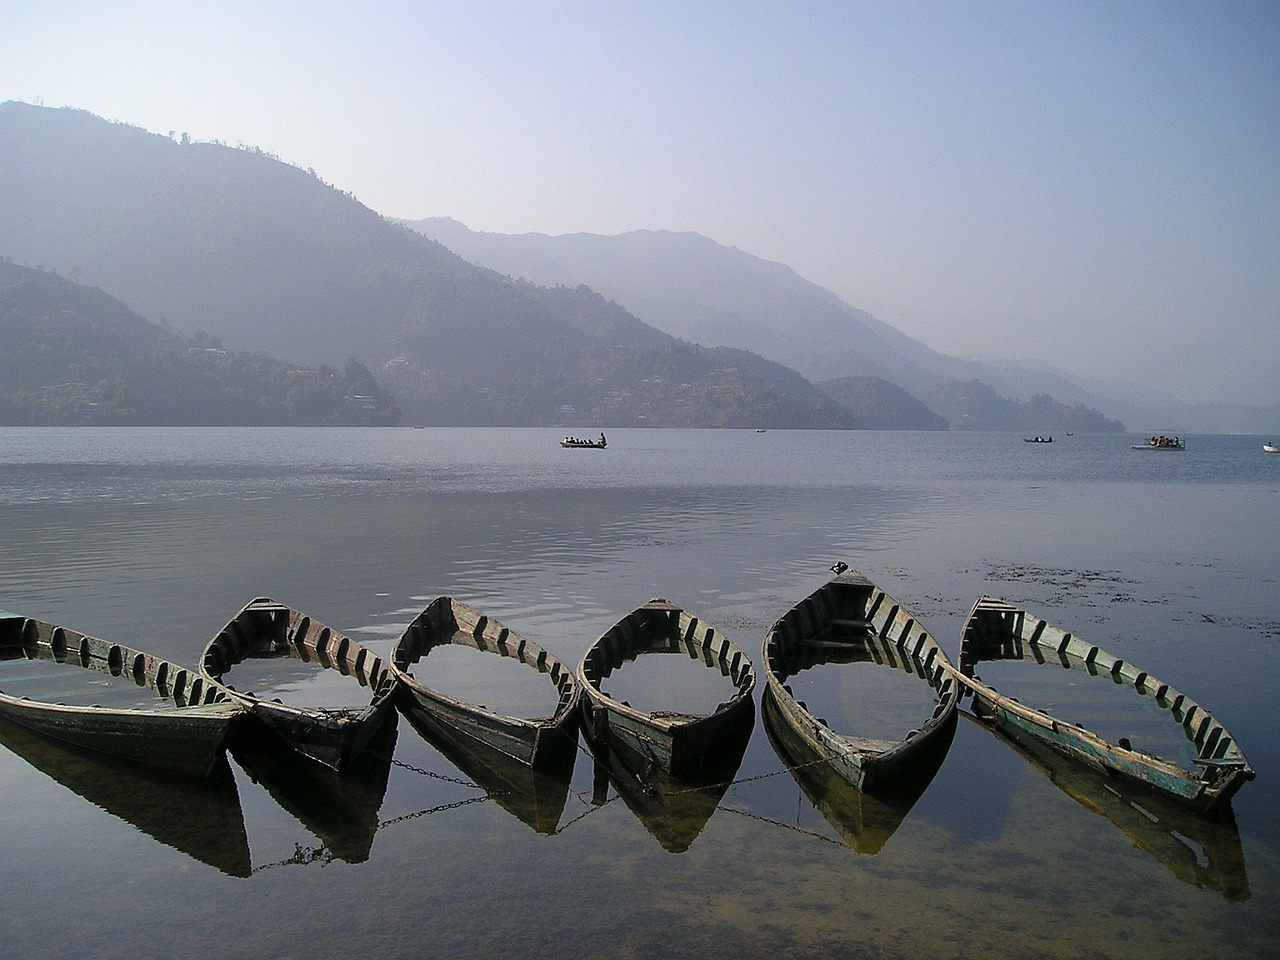 nepal,boats,lake,pokhara,free pictures, free photos, free images, royalty free, free illustrations, public domain